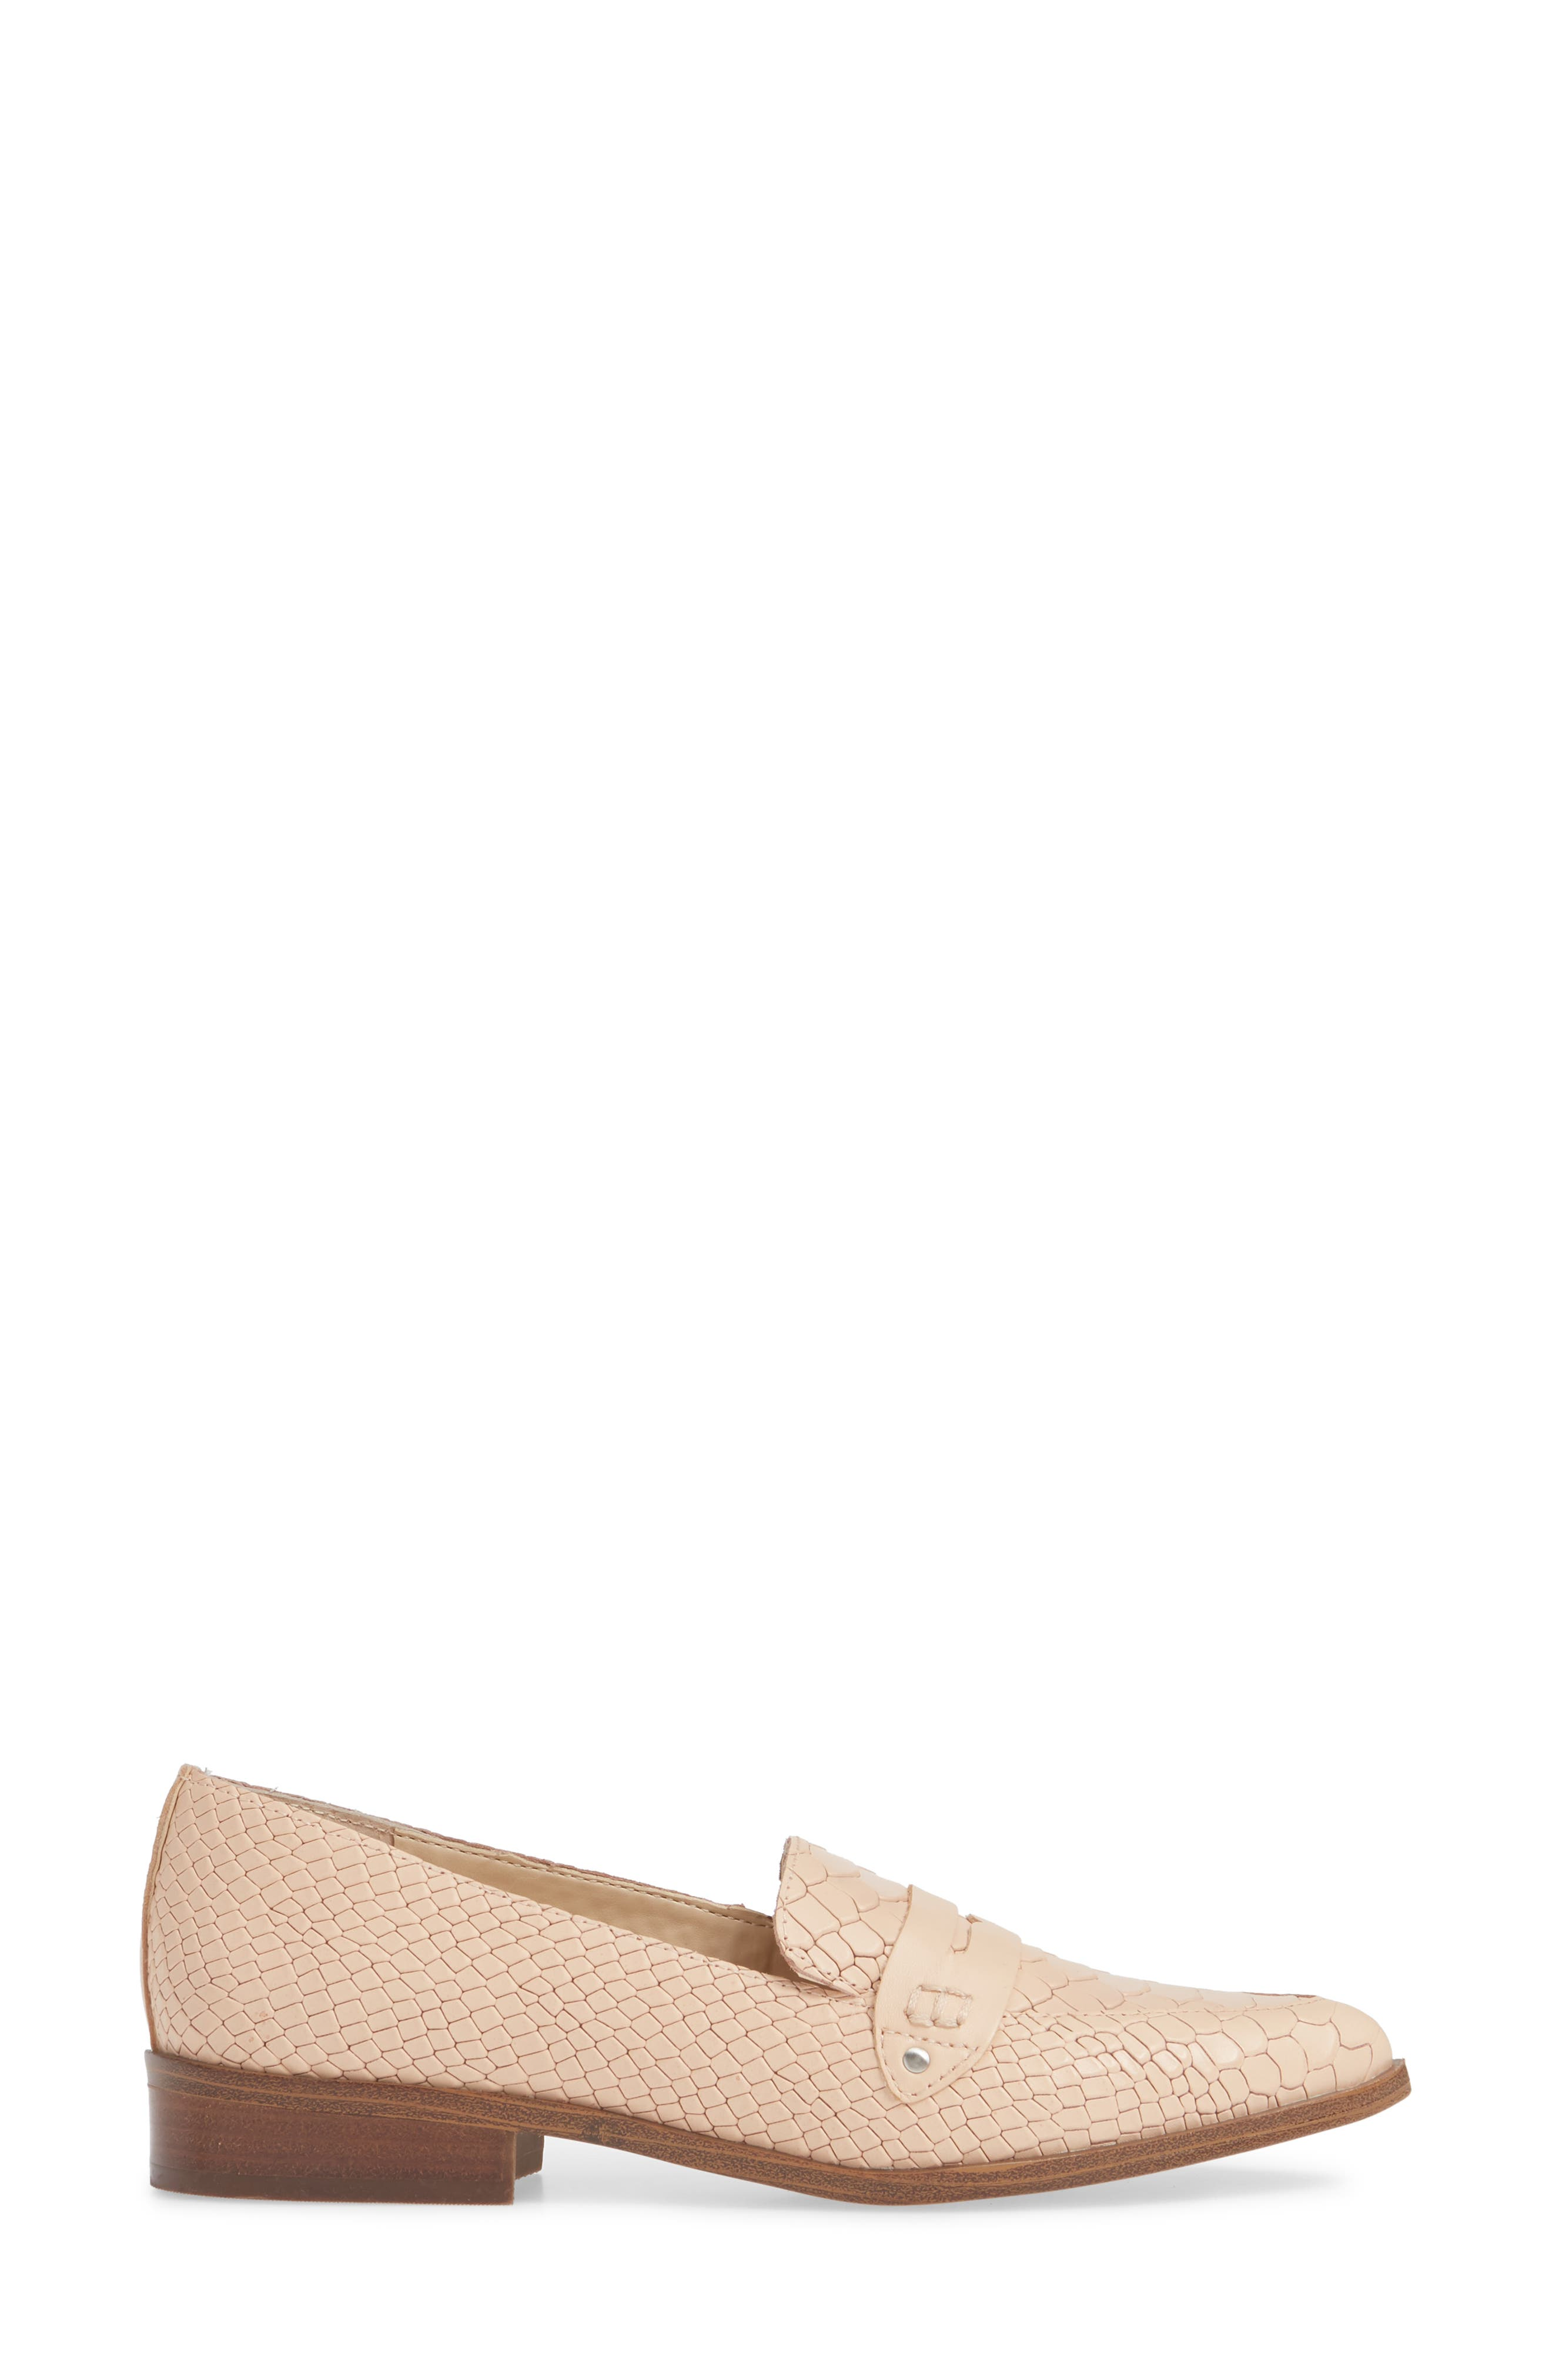 SOLE SOCIETY, Jessica Smoking Slipper, Alternate thumbnail 3, color, BISQUE LEATHER